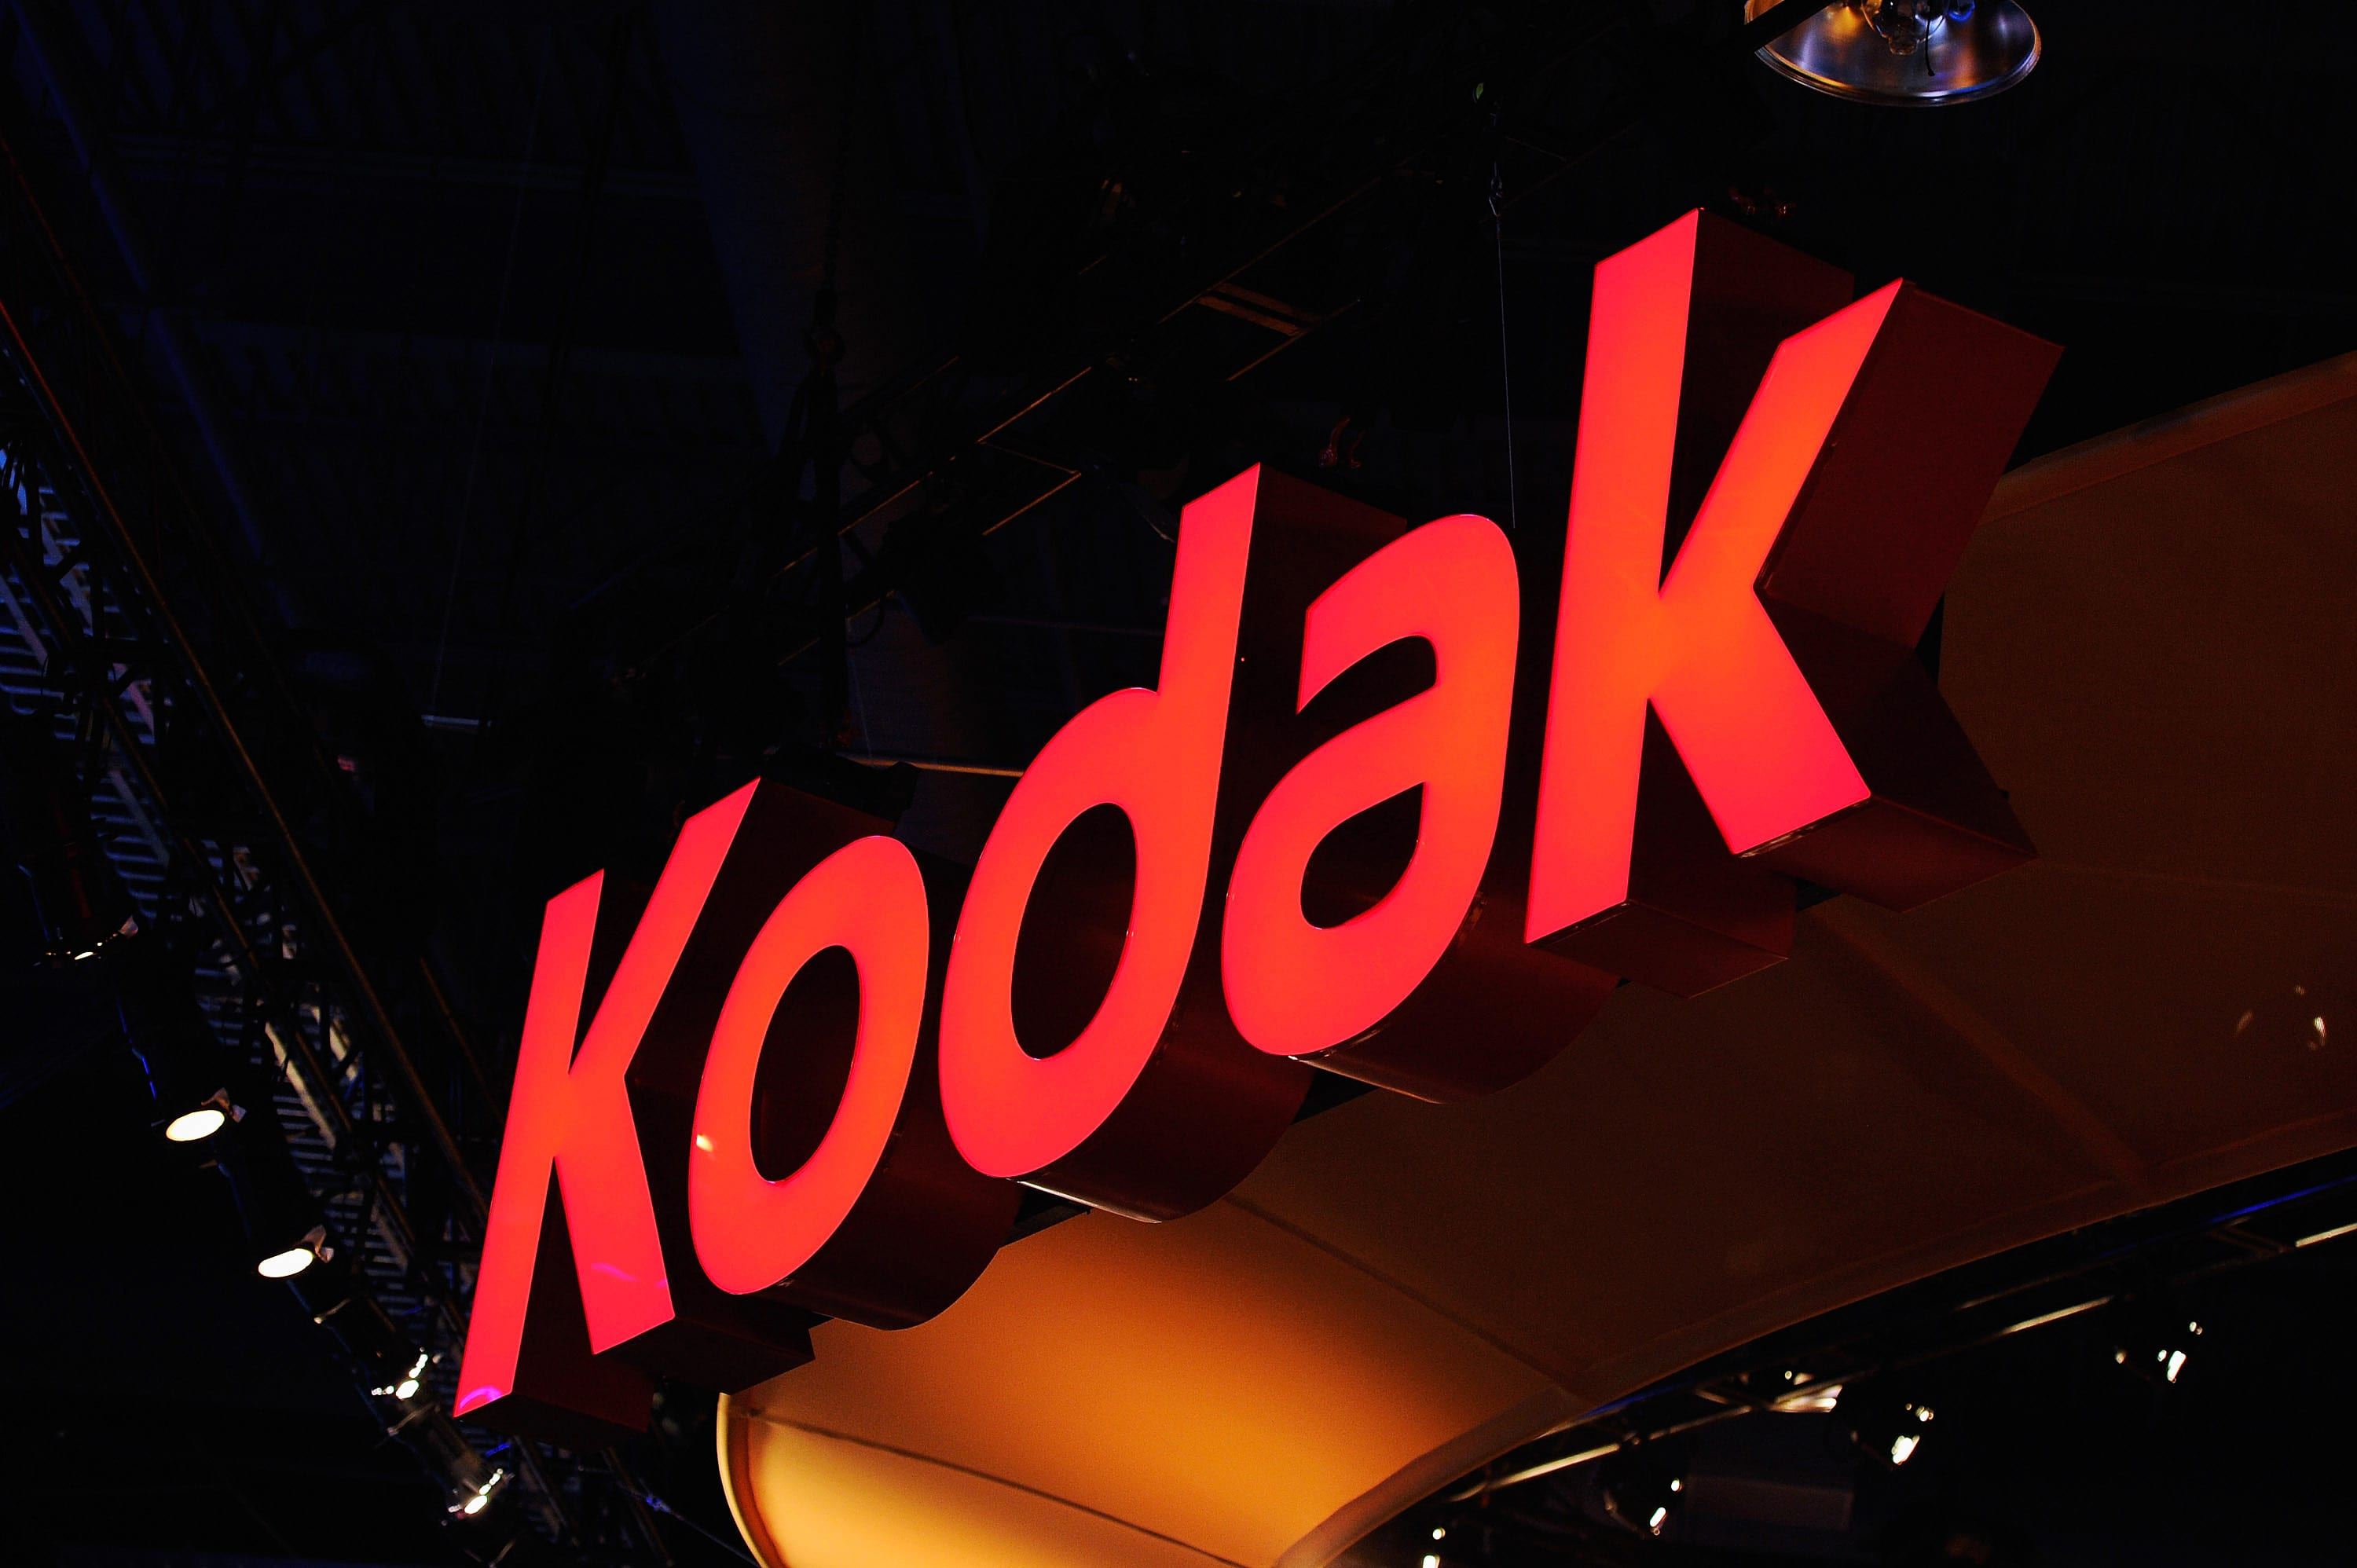 Eastman Kodak's top executive reportedly got Trump deal windfall on an 'understanding' - CNBC thumbnail